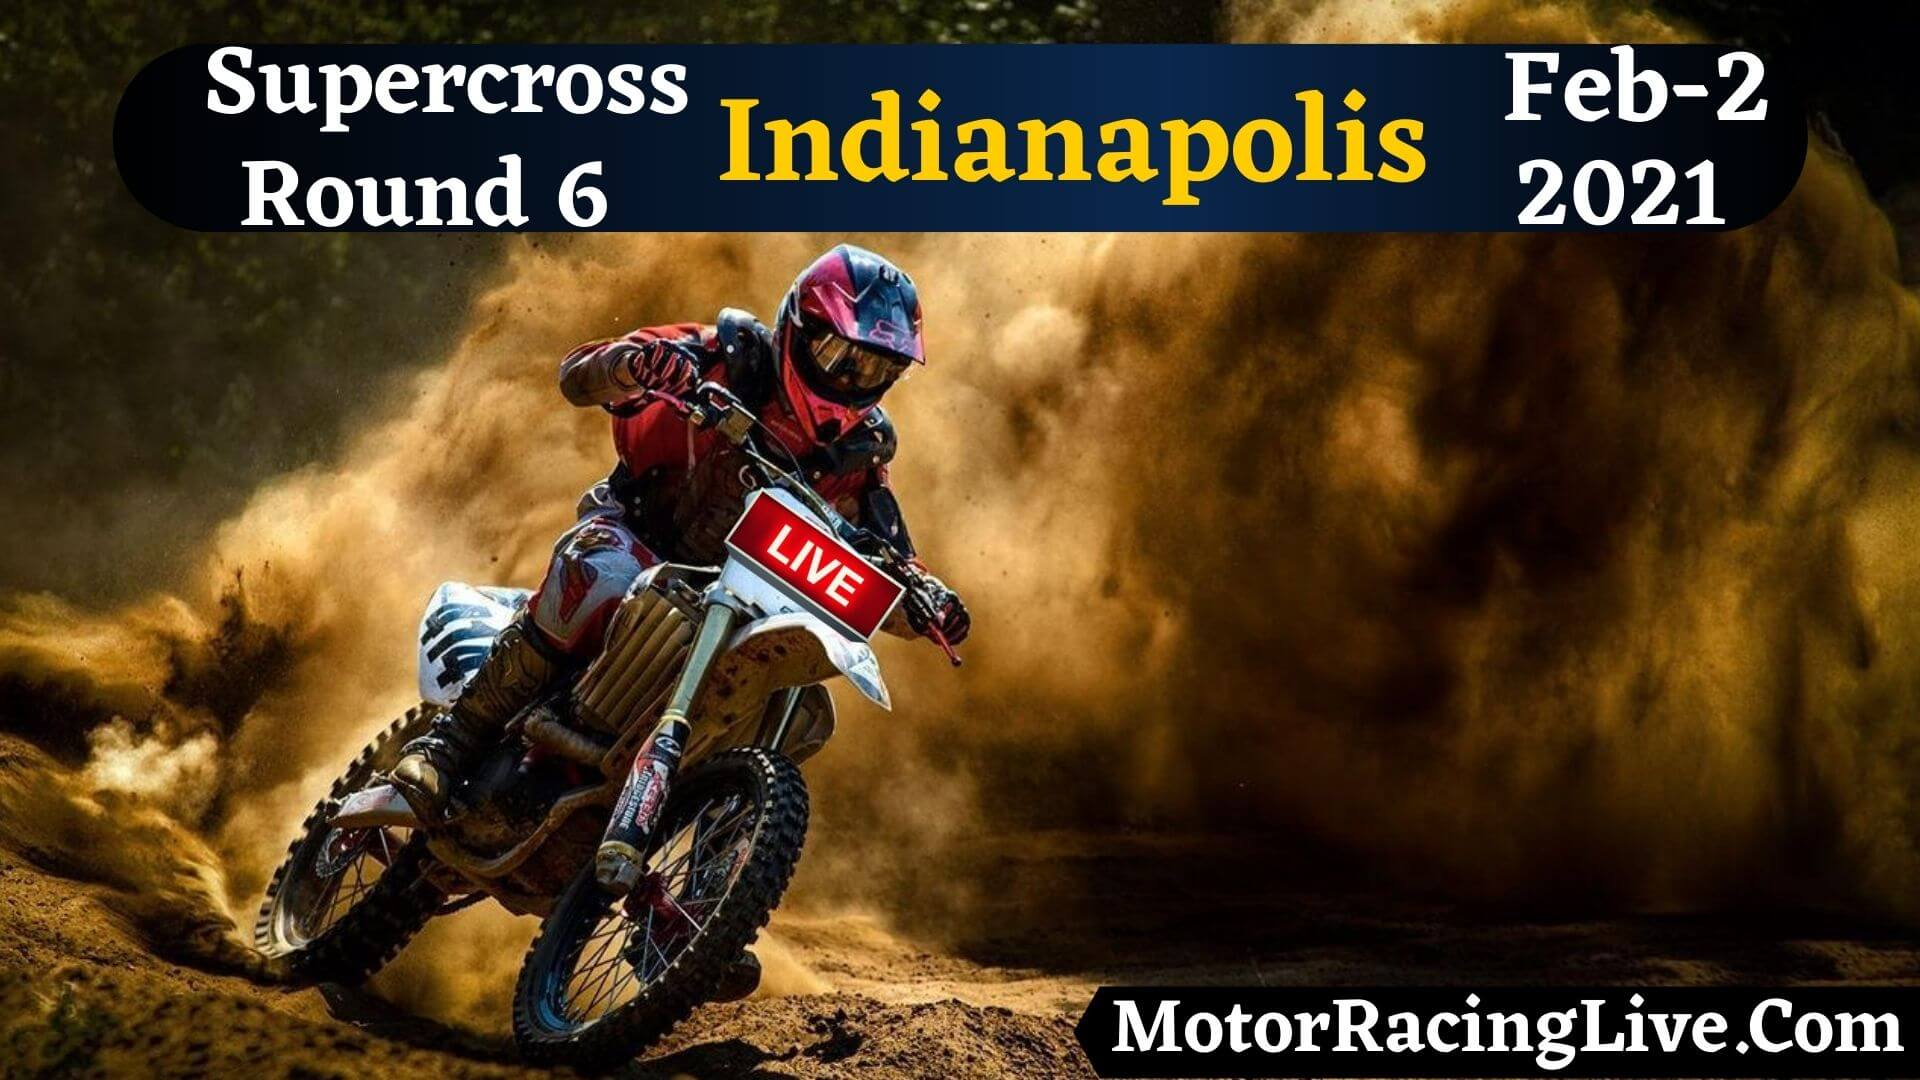 Supercross Indianapolis Round 6 Live Stream 6-Feb 2021